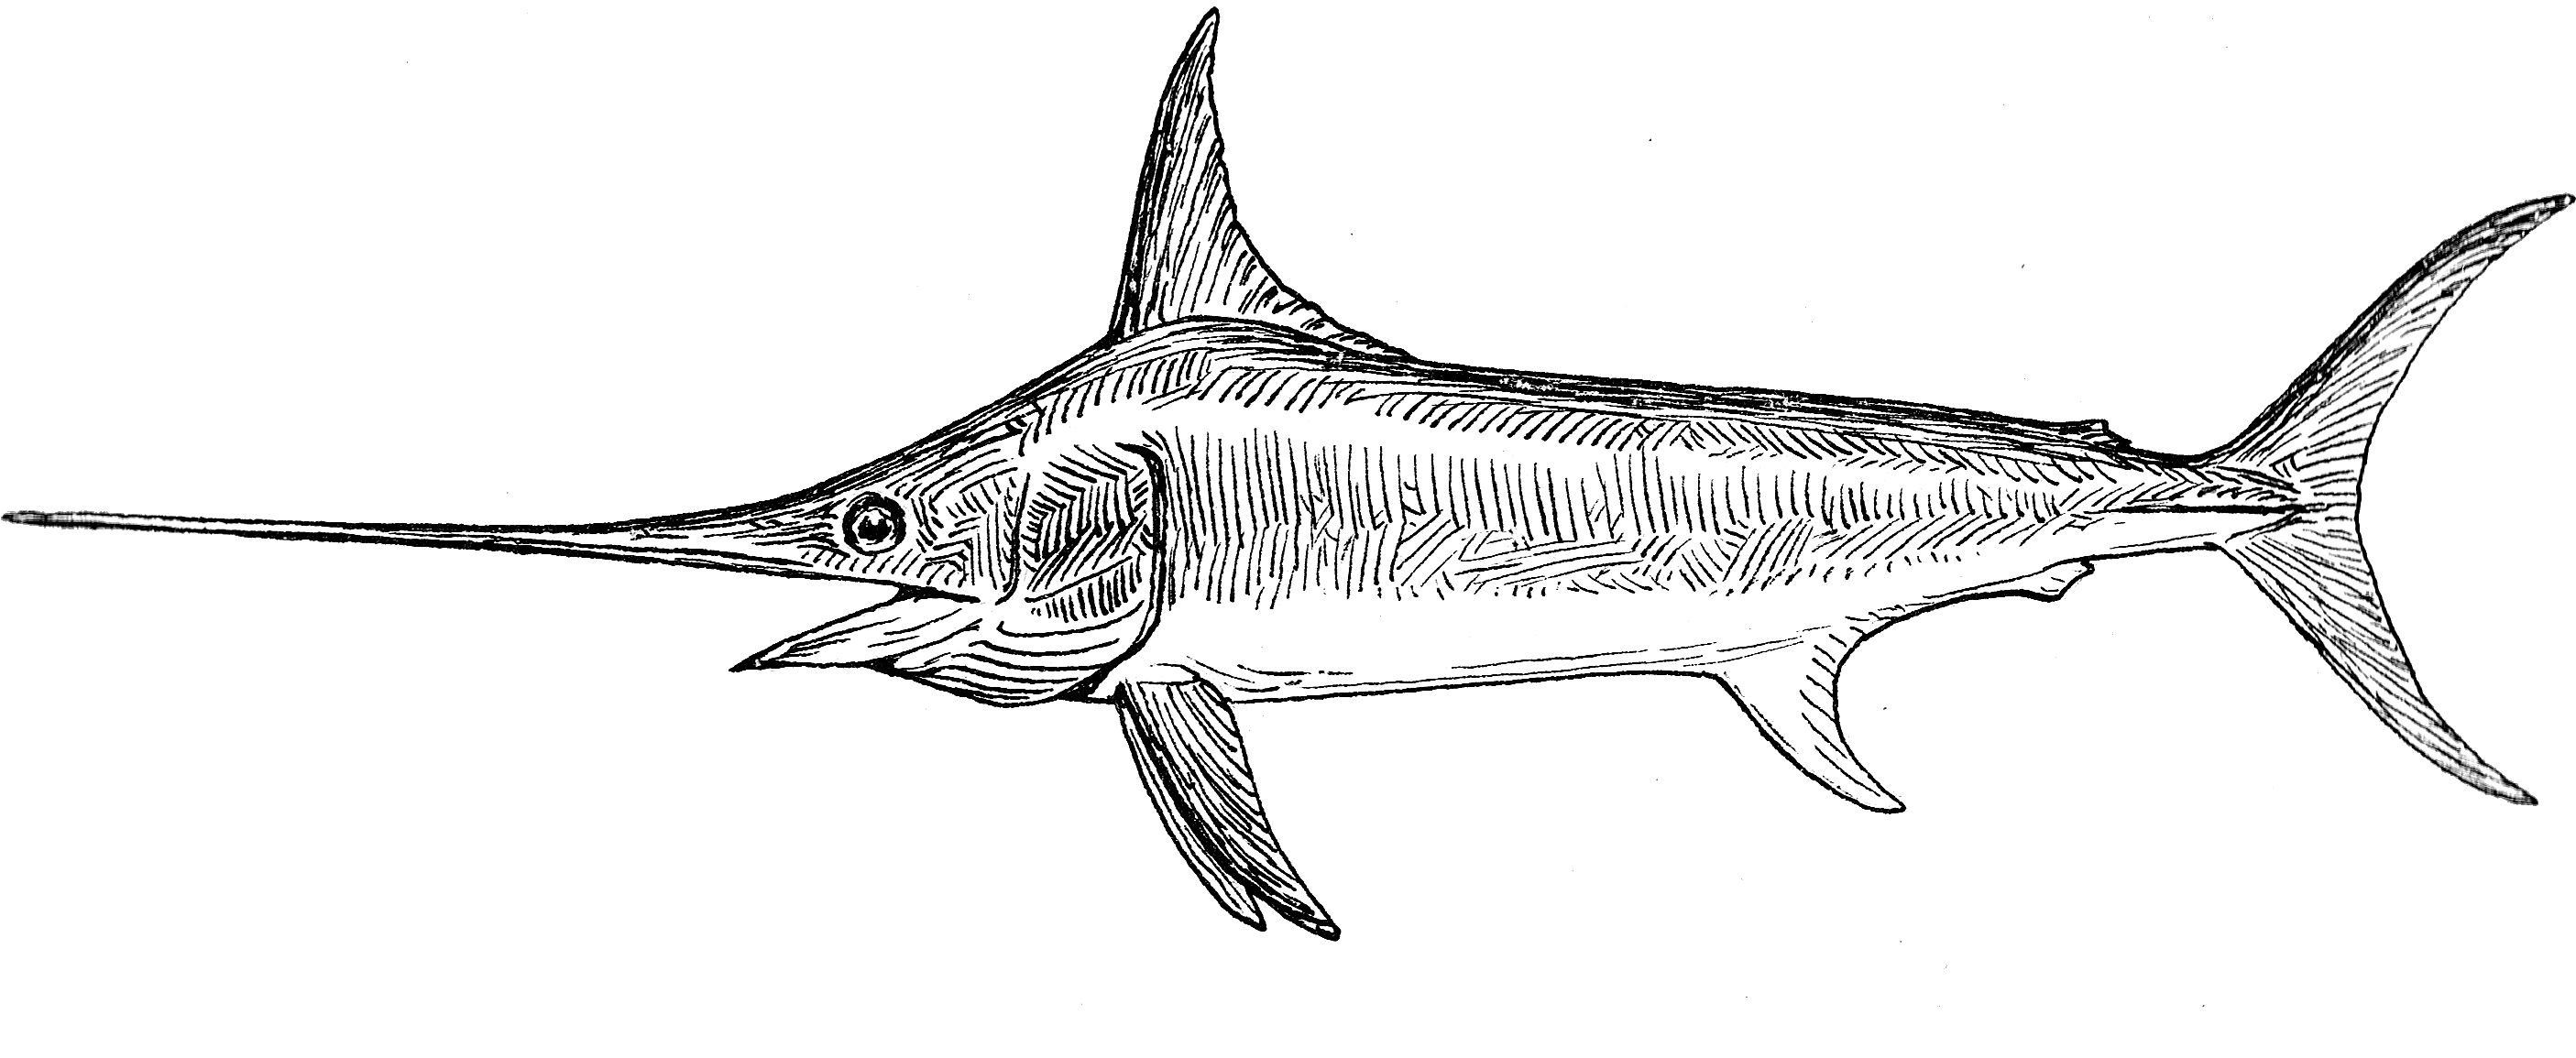 Uncategorized Swordfish Drawing malaysian fisherman attacked by swordfish beel den stormer drawing of a swordfish